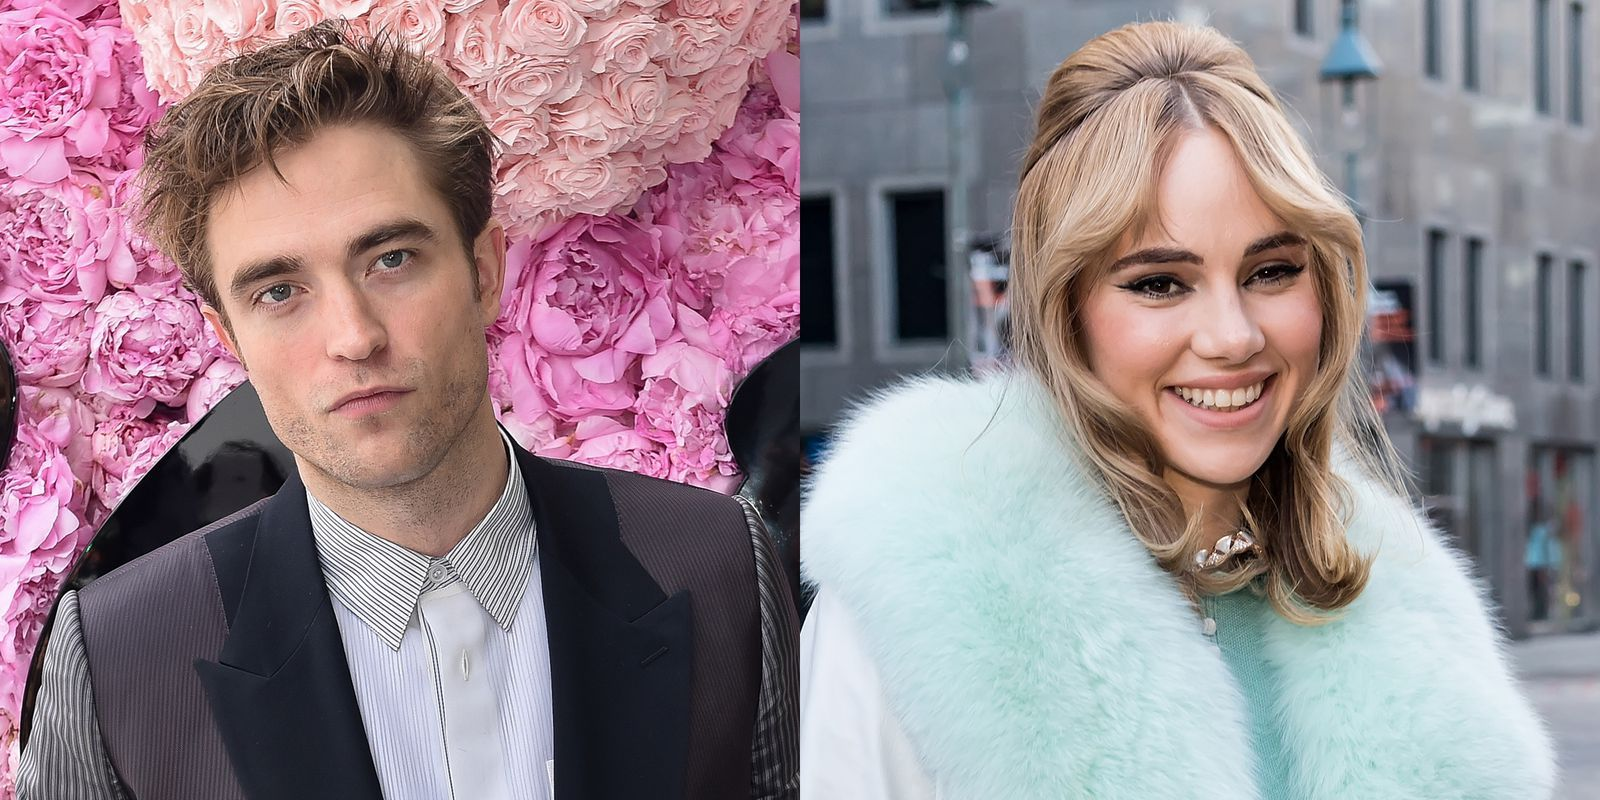 Robert Pattinson and Suki Waterhouse Are Now Dating and